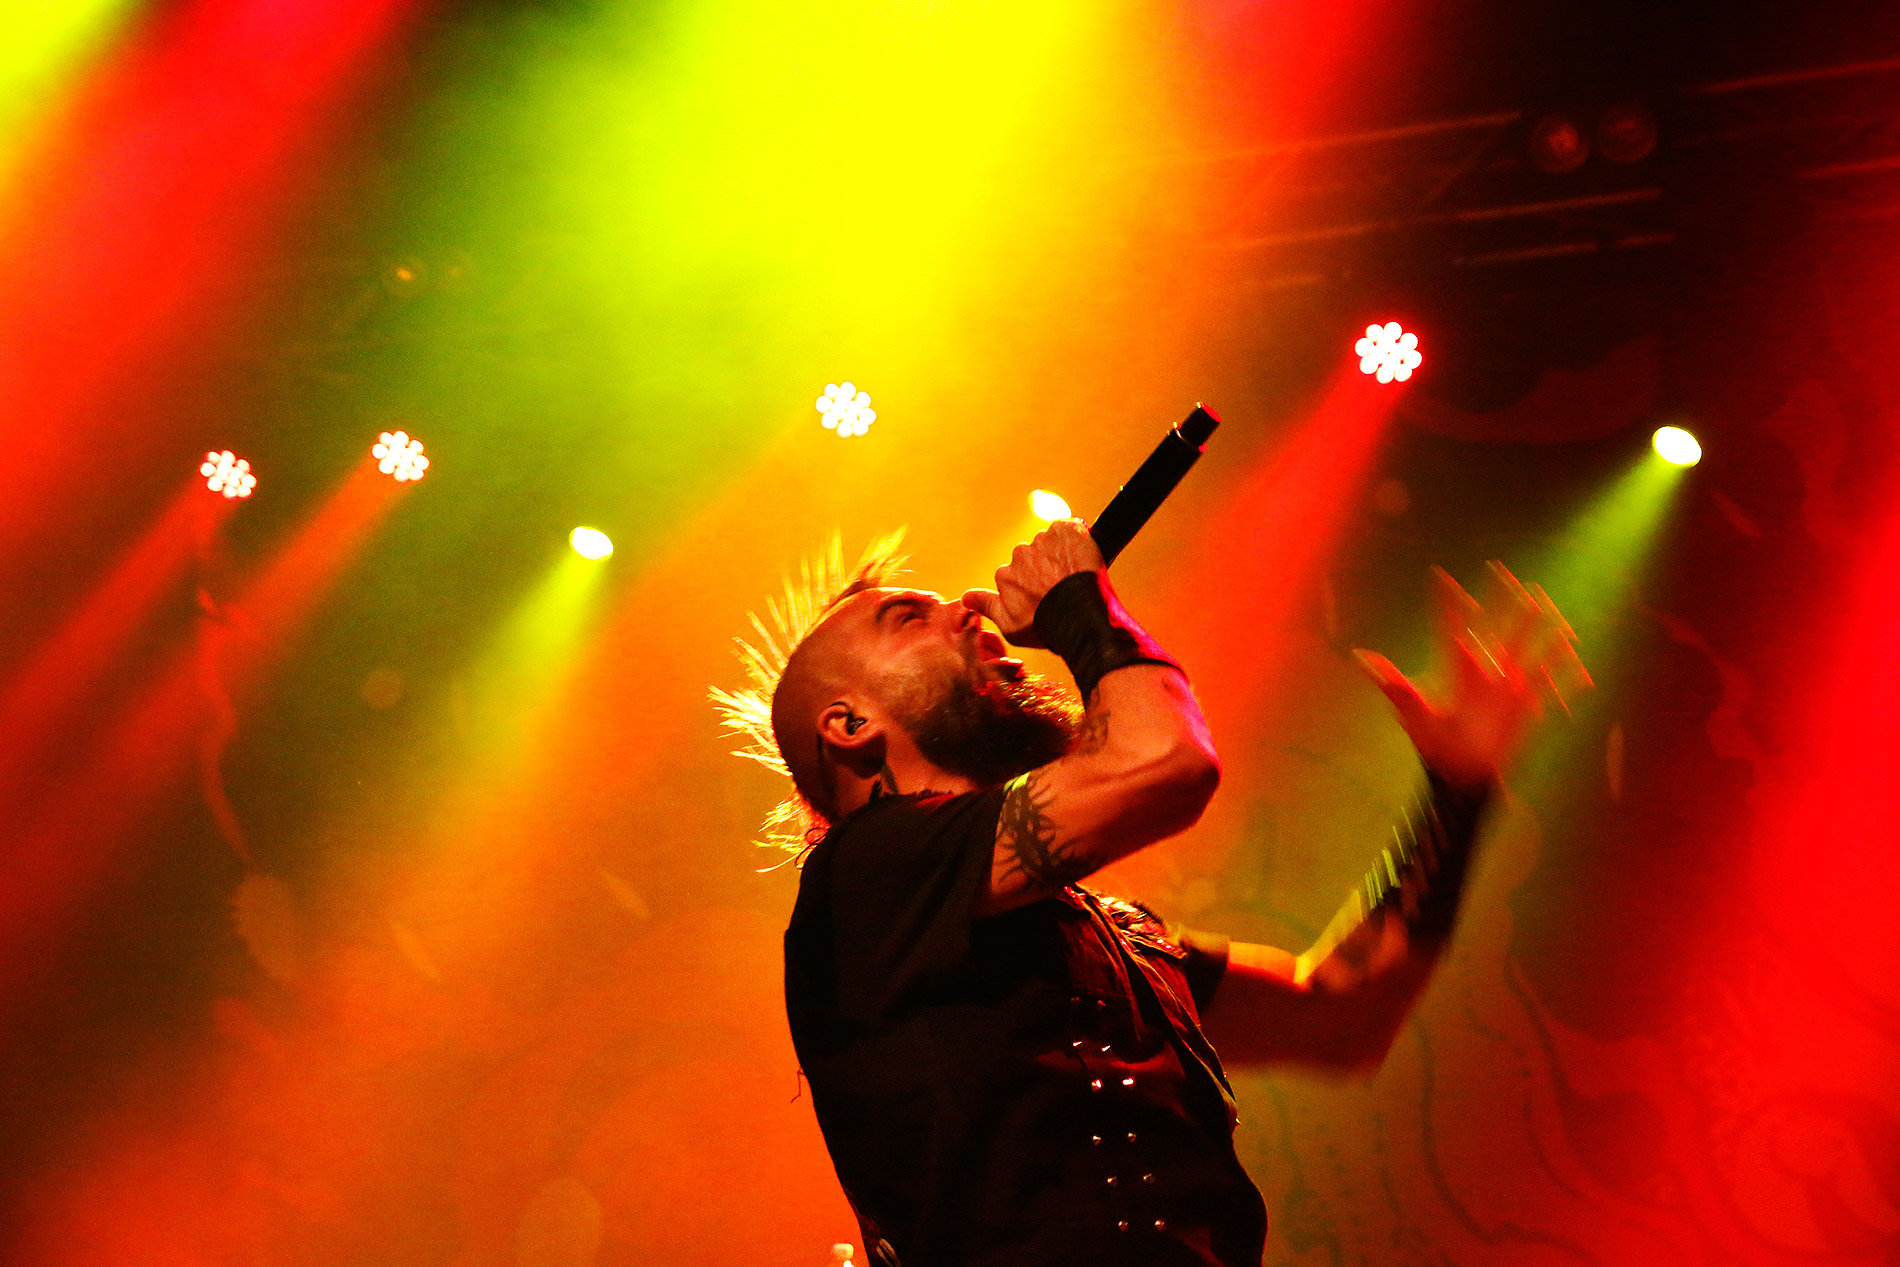 Jesse Leach. Picture: Tony Öhberg for Finland Today